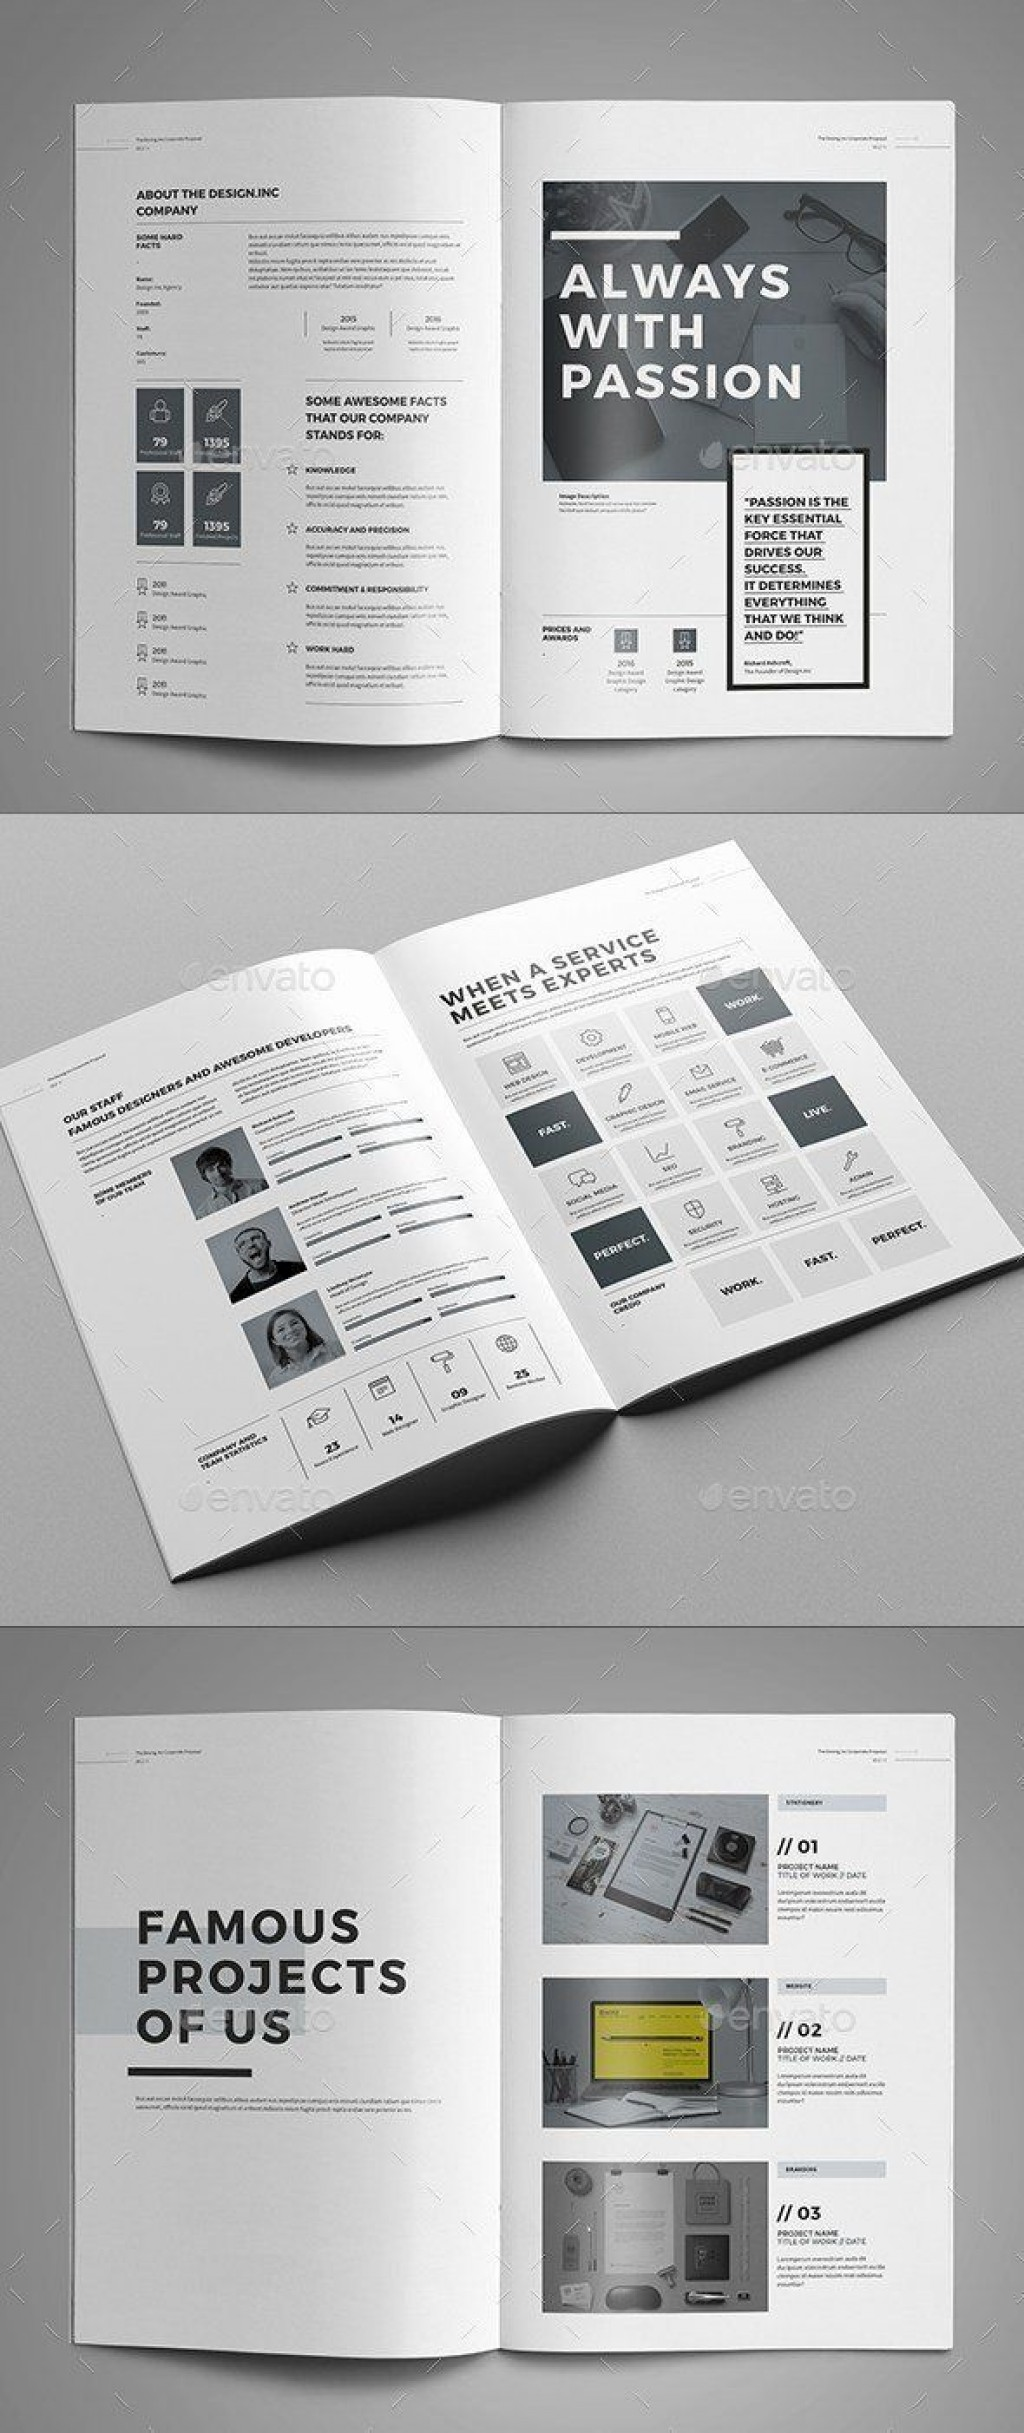 005 Amazing Web Design Proposal Template Indesign High Resolution Large